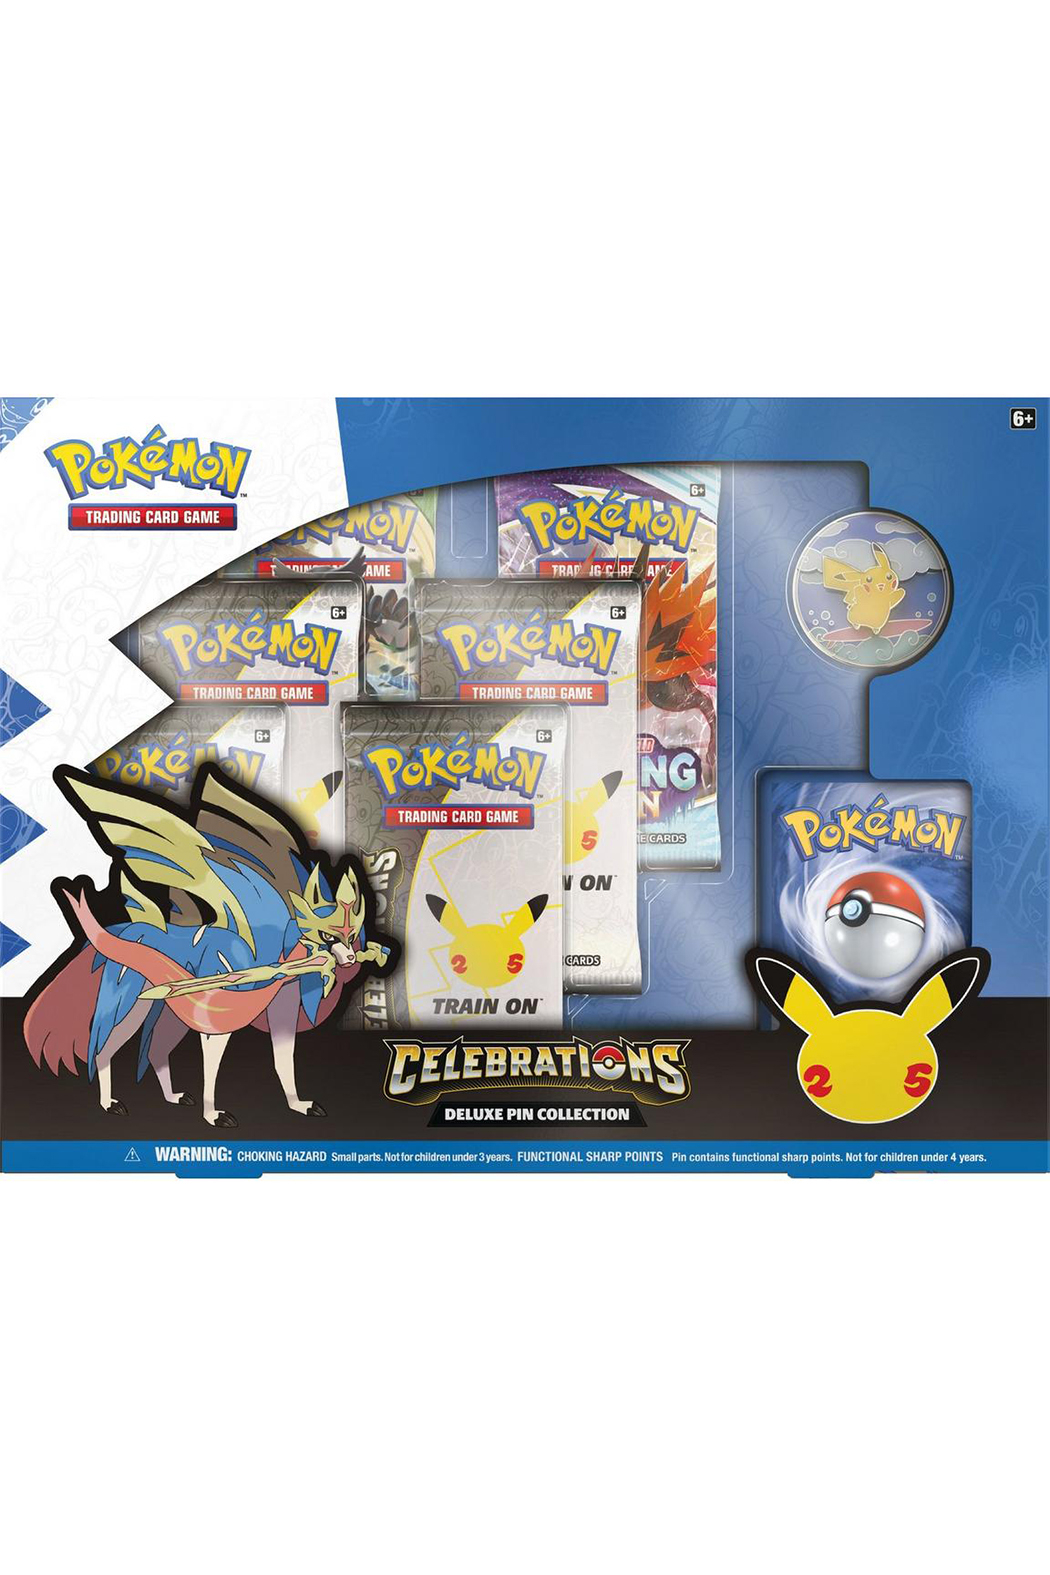 Pokemon Celebrations Deluxe Pin Collection - Main Image